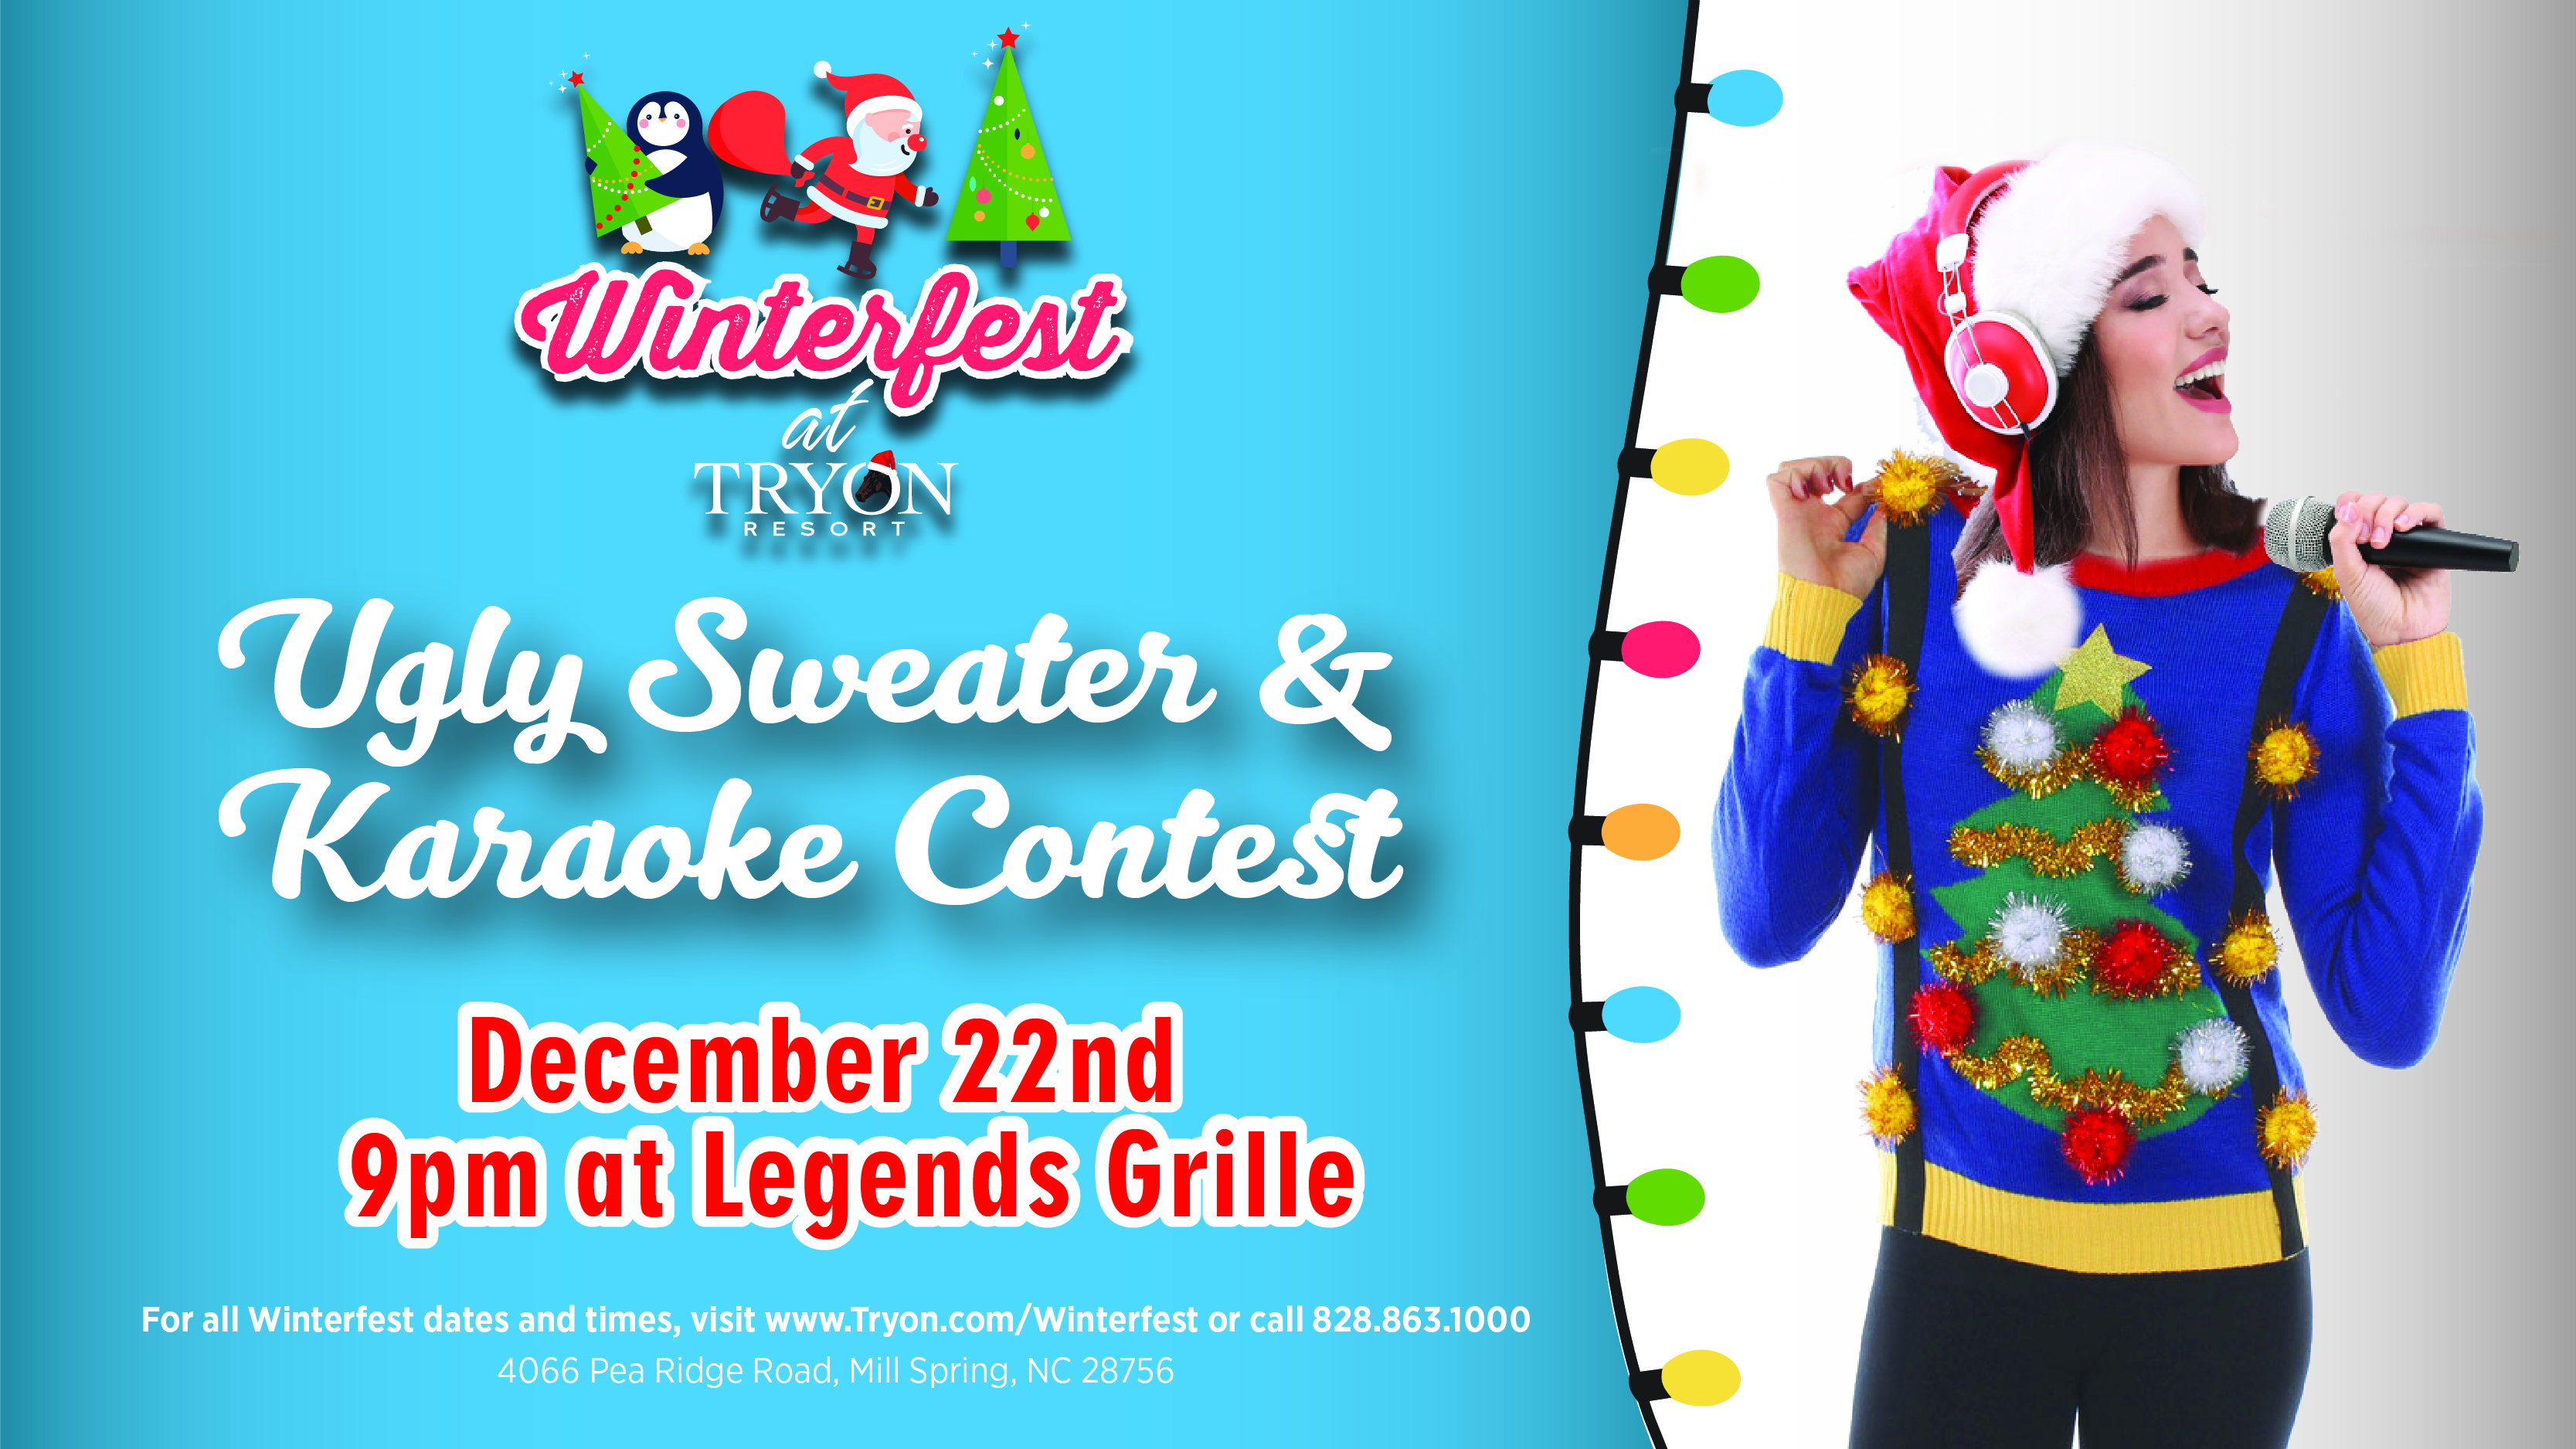 Ugly Sweater & Karaoke Contest on December 22nd!